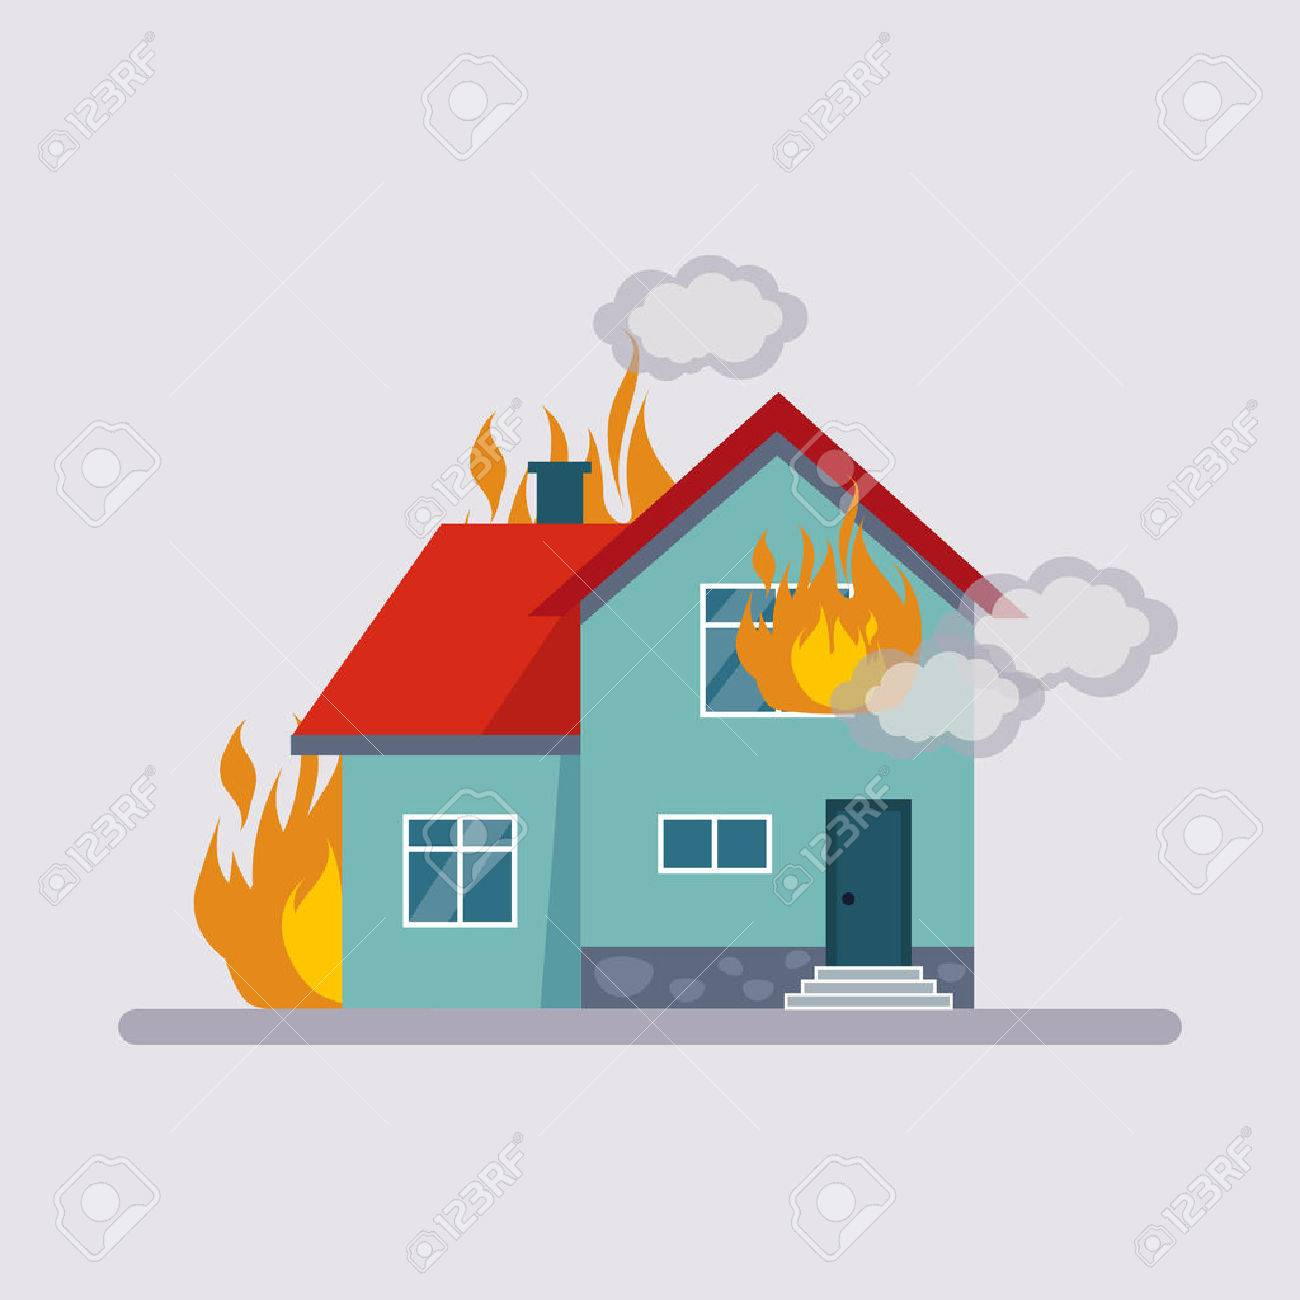 Fire Insurance Colourful Illustration flat style - 50148594